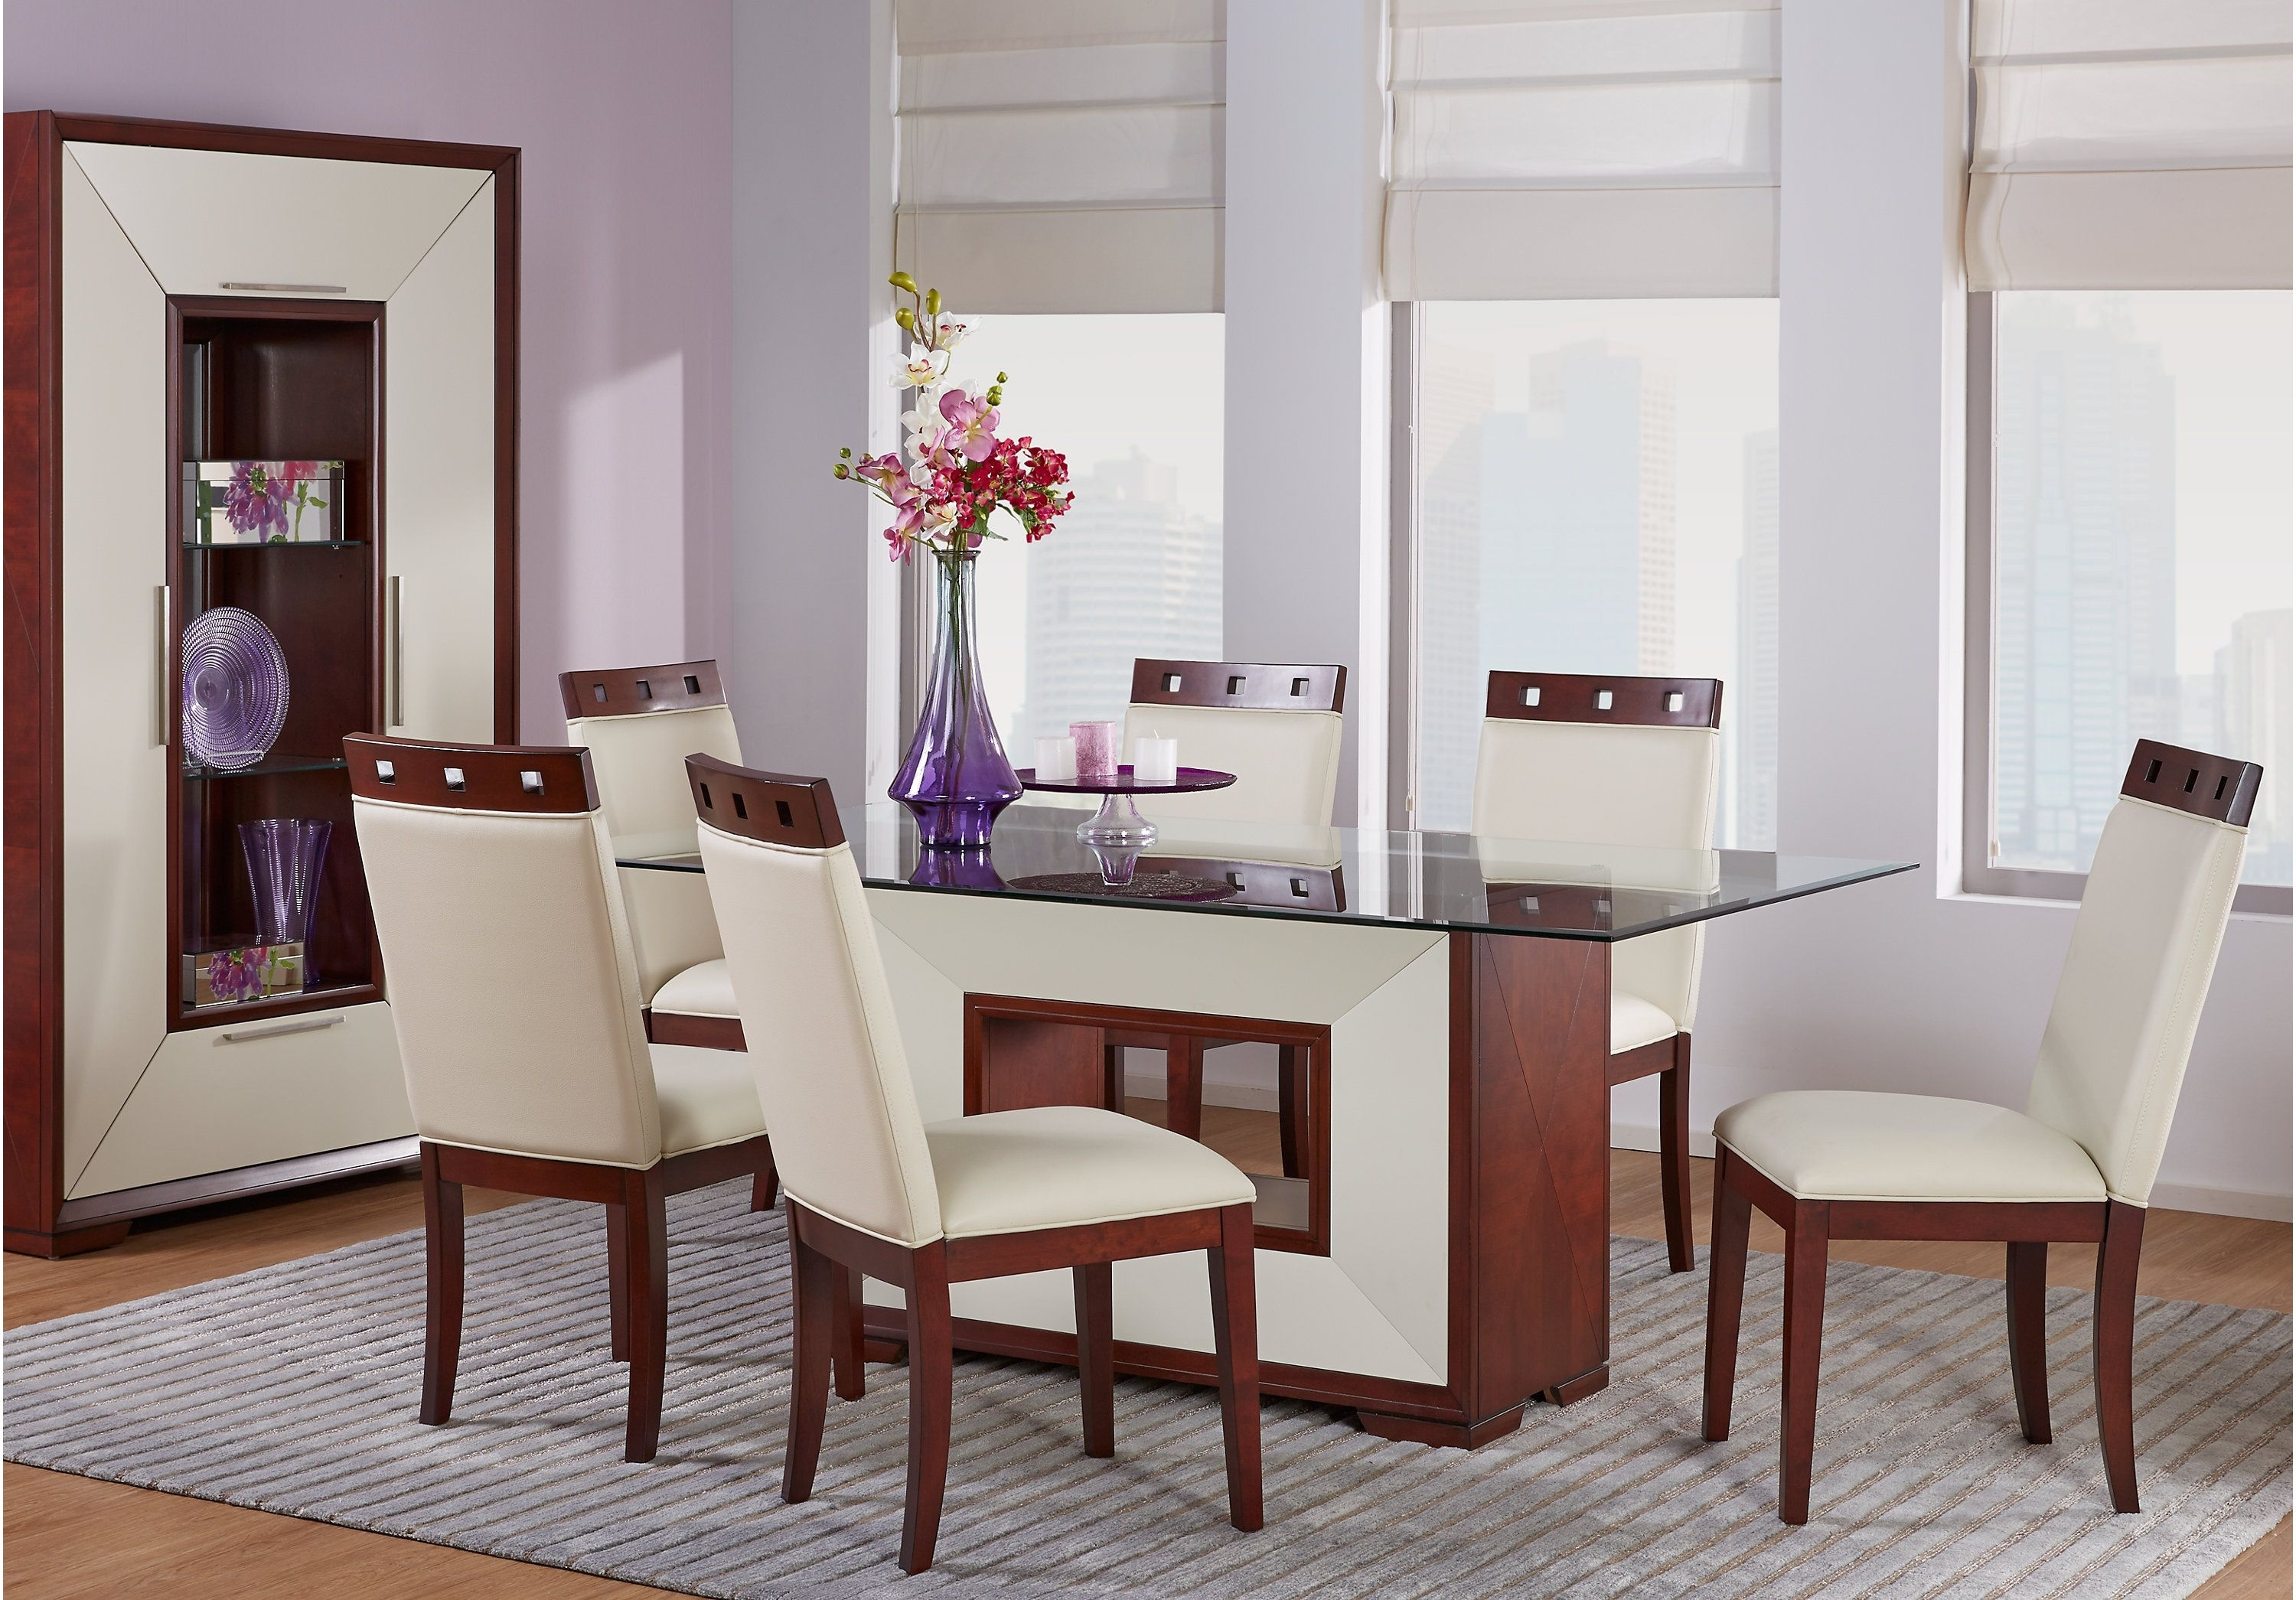 Sofia Vergara Savona Ivory 5 Pc Rectangle Dining Room With Glass Top With Regard To Well Known Palazzo 7 Piece Dining Sets With Pearson Grey Side Chairs (View 20 of 25)